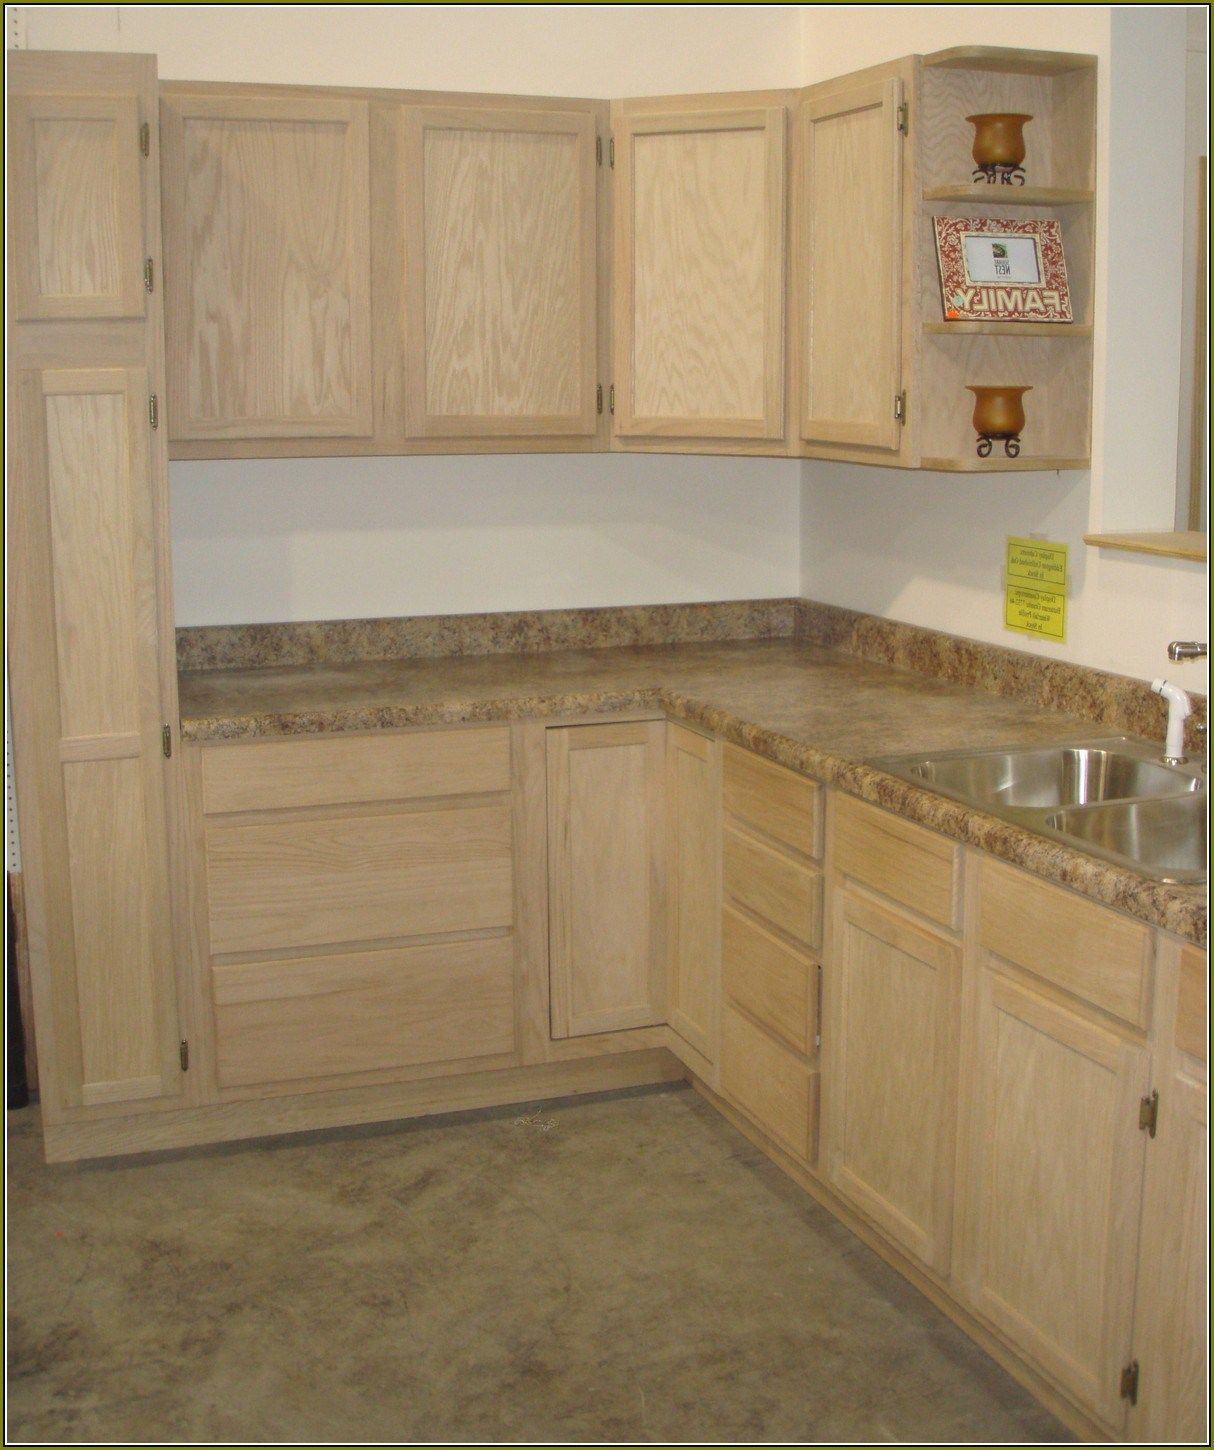 Home Improvements Refference Unfinished Pine Cabinets Home Depot Kitchen Cabinets Assemble Home Depot Lowes Kitchen Cabinets Home Improvements Refference Unfi With Images Kitchen Cabinets Home Depot Unfinished Kitchen Cabinets Home